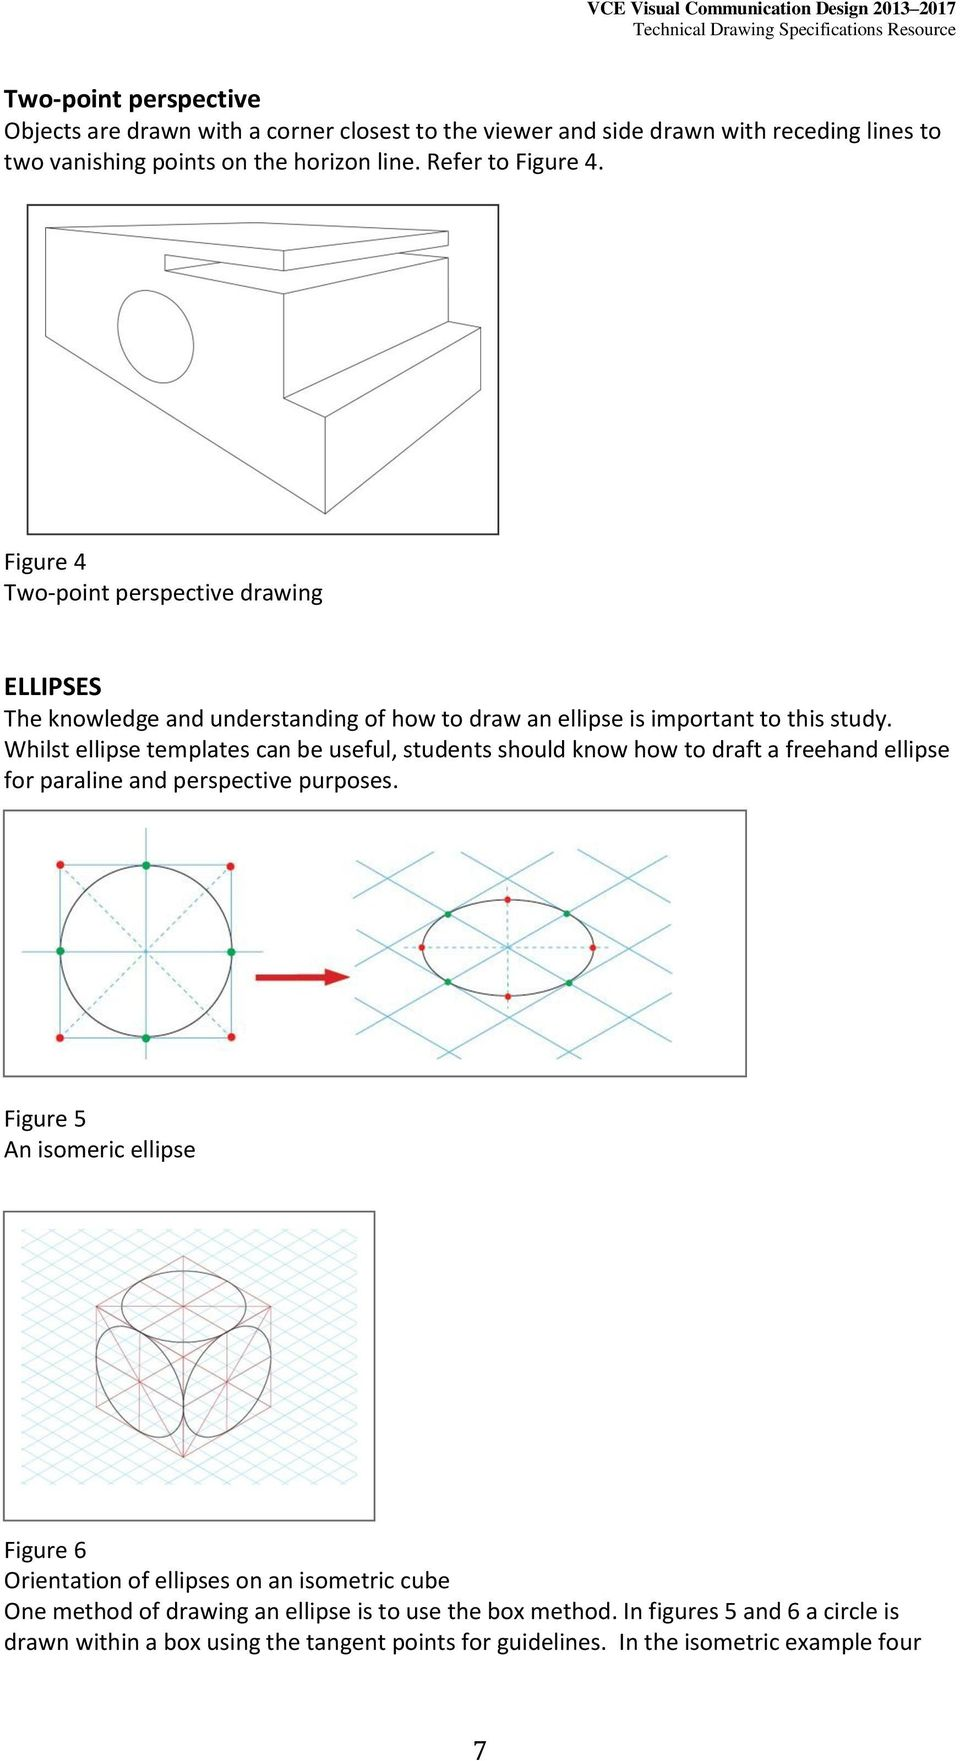 Whilst ellipse templates can be useful, students should know how to draft a freehand ellipse for paraline and perspective purposes.